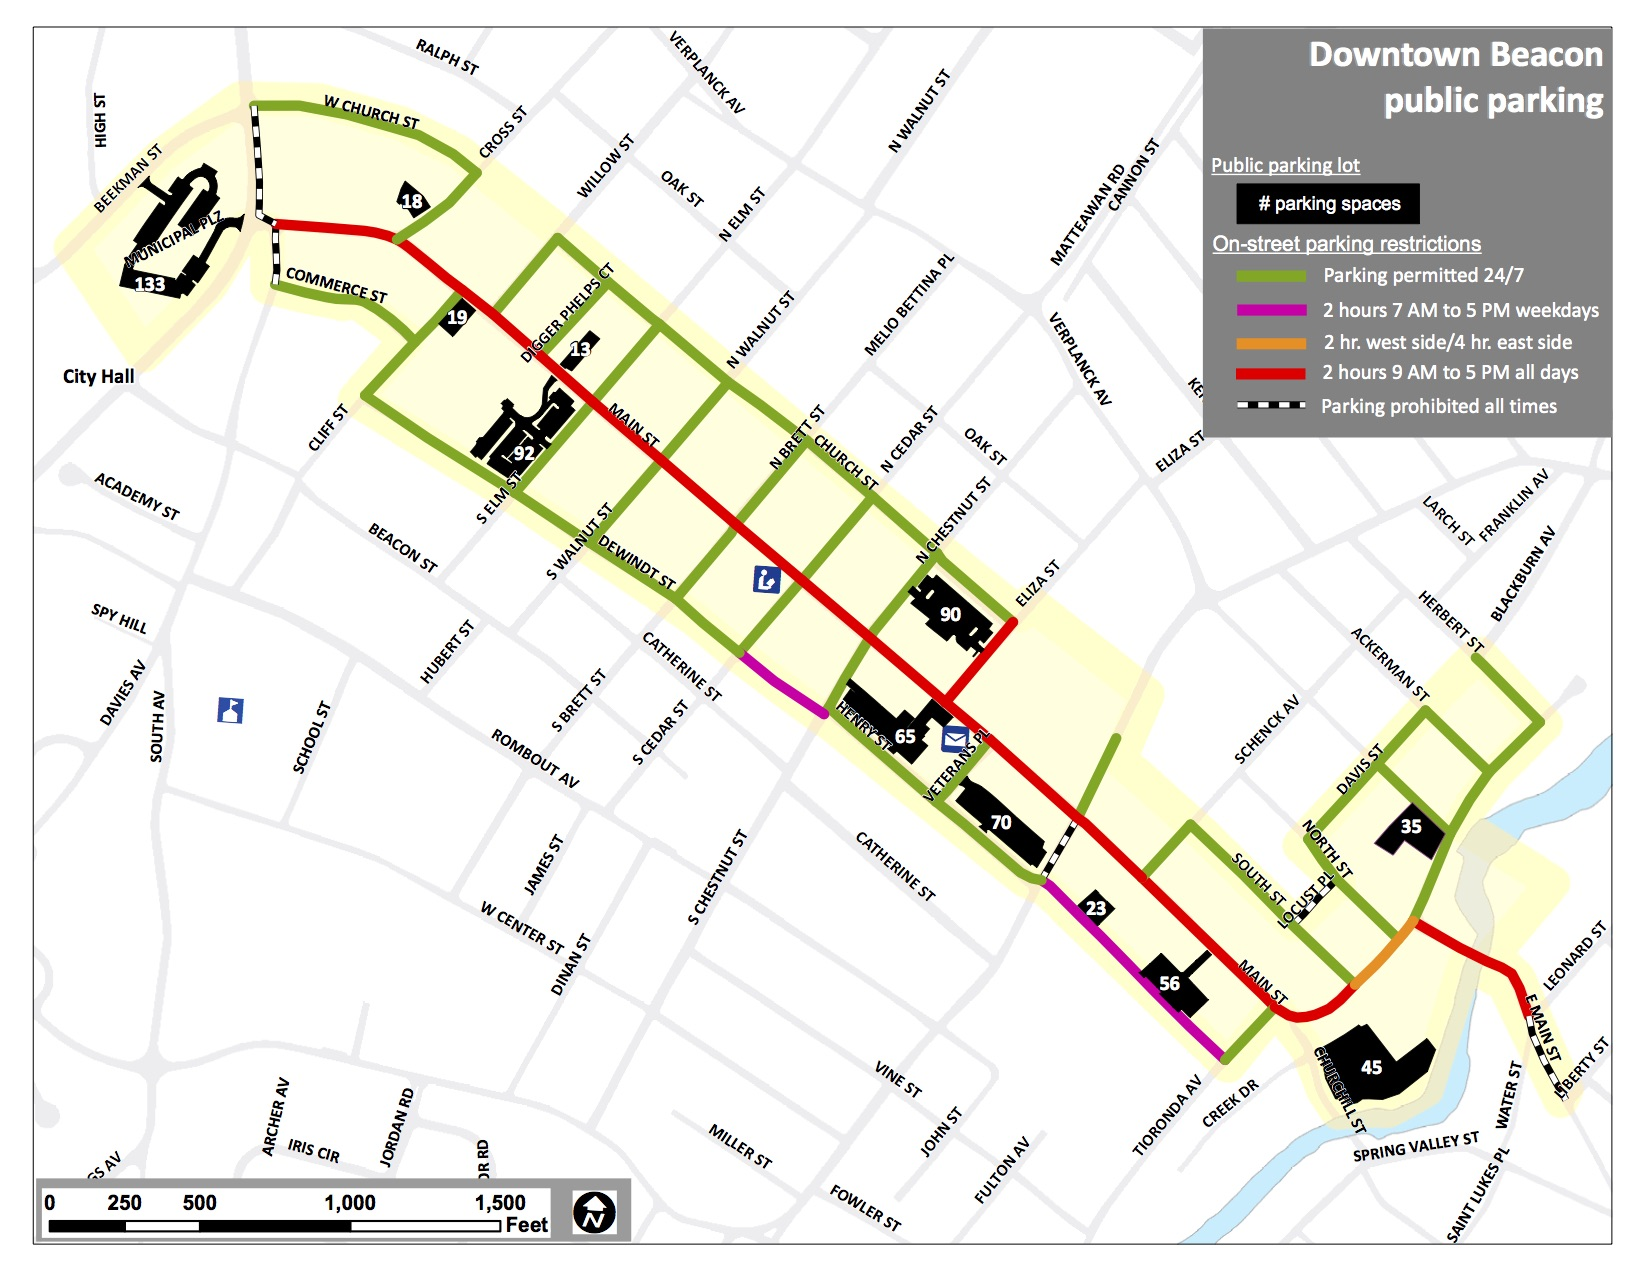 Free Municipal Parking Map from The City of Beacon.